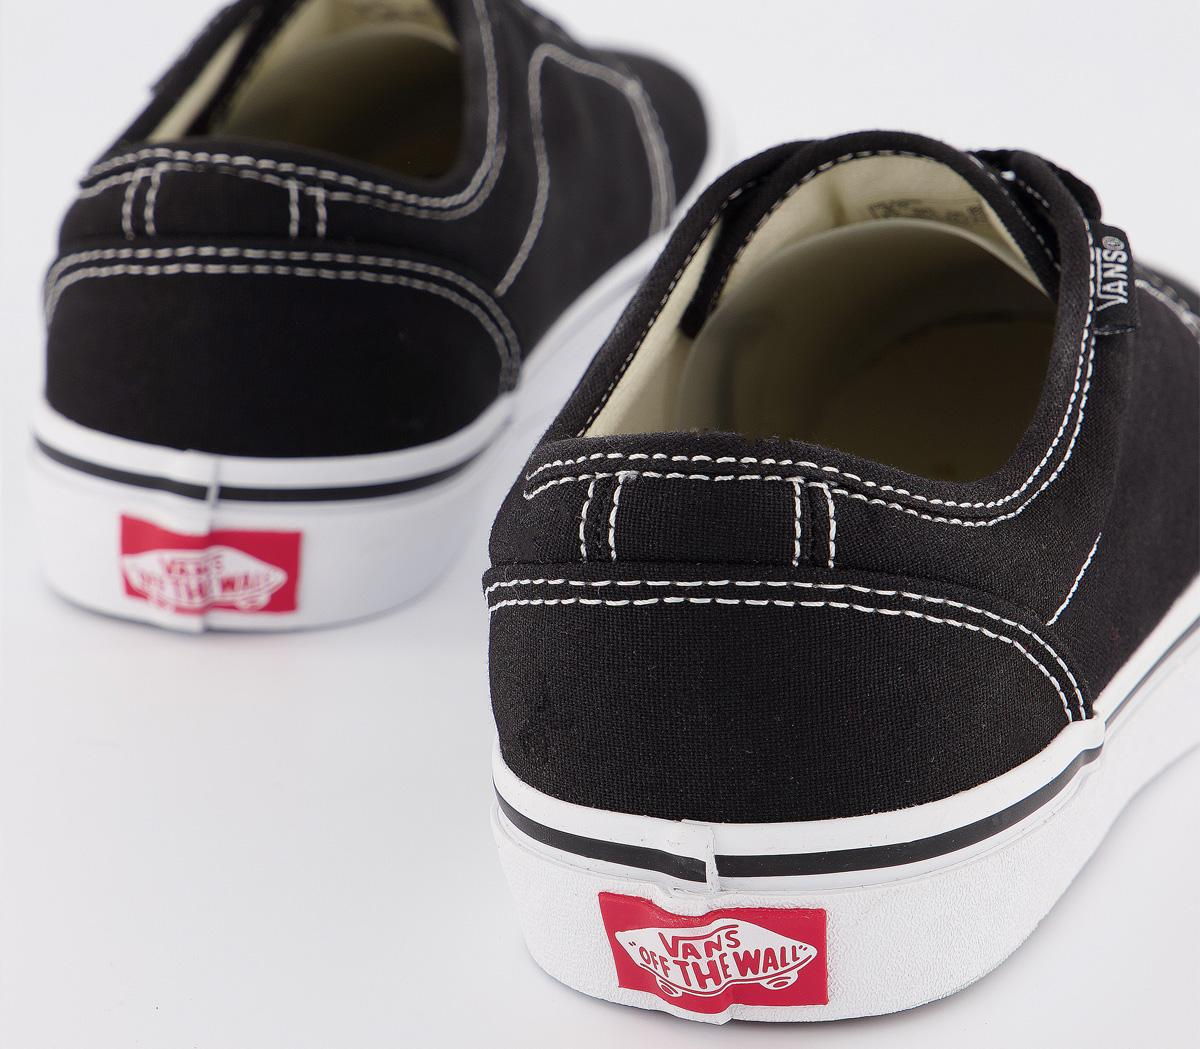 106 Vulcanized Jnr Trainers